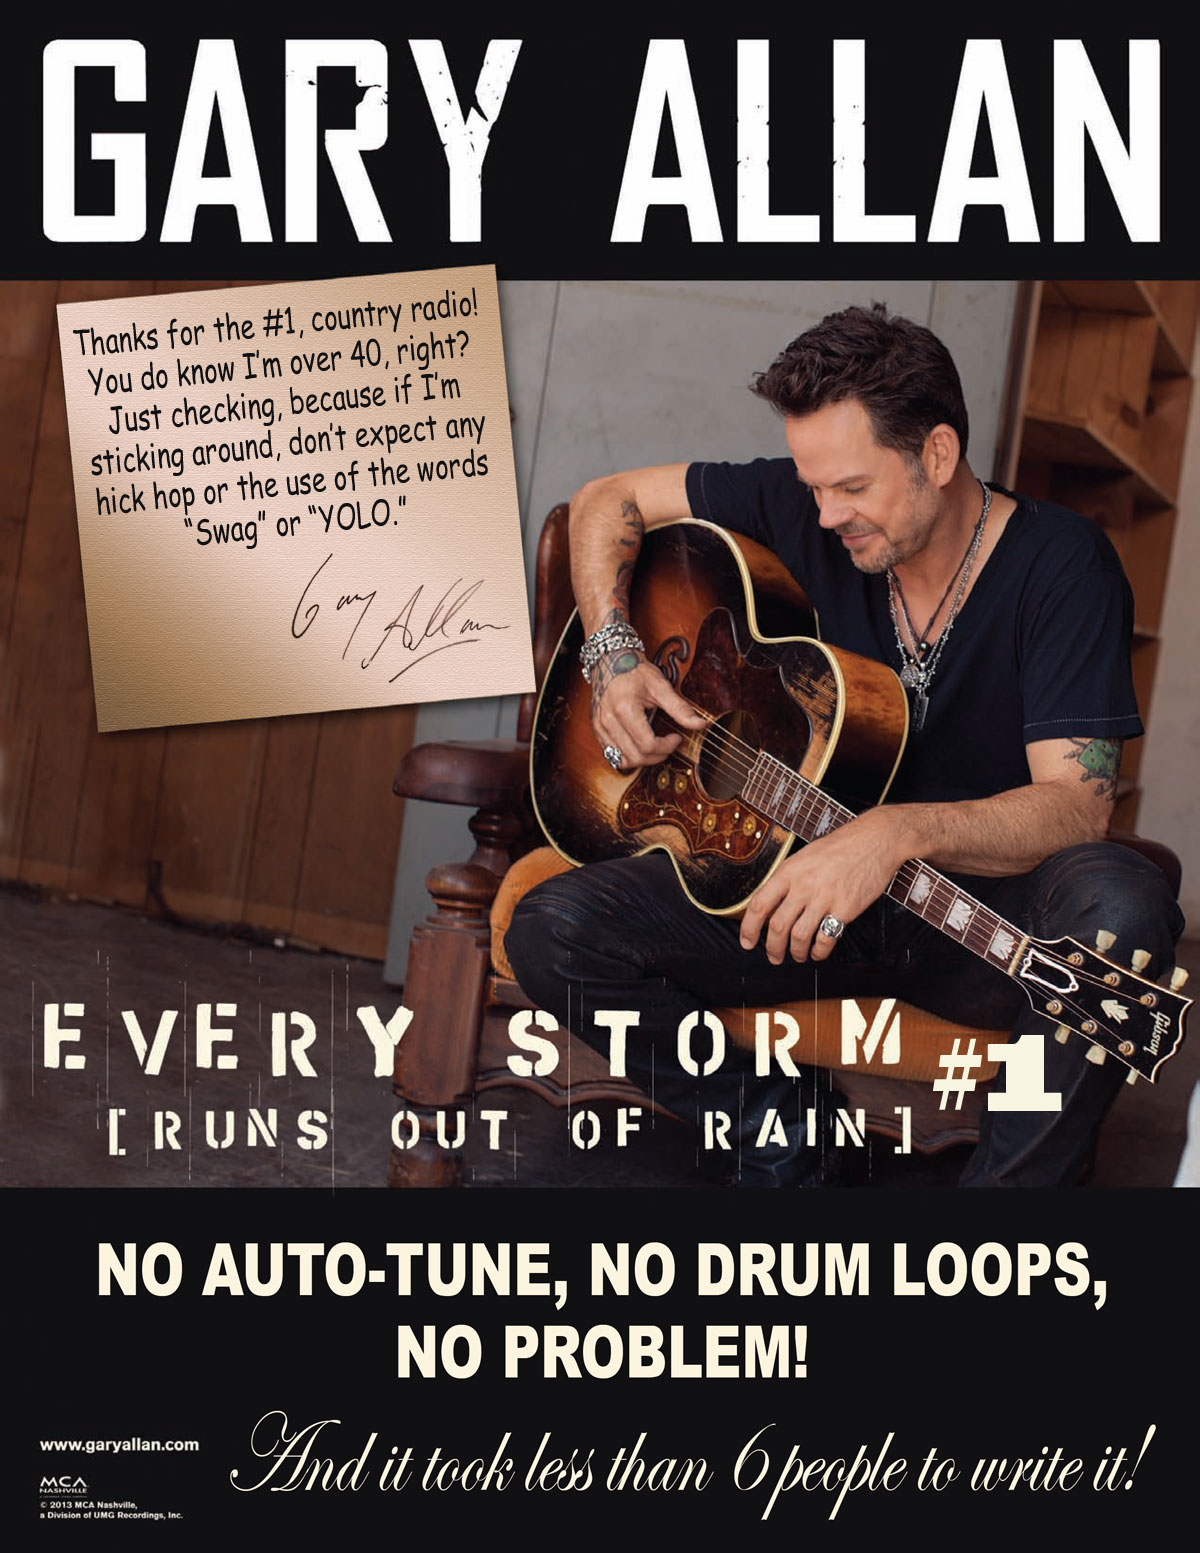 Gary Allan Thanks Country Radio For His 1 Song